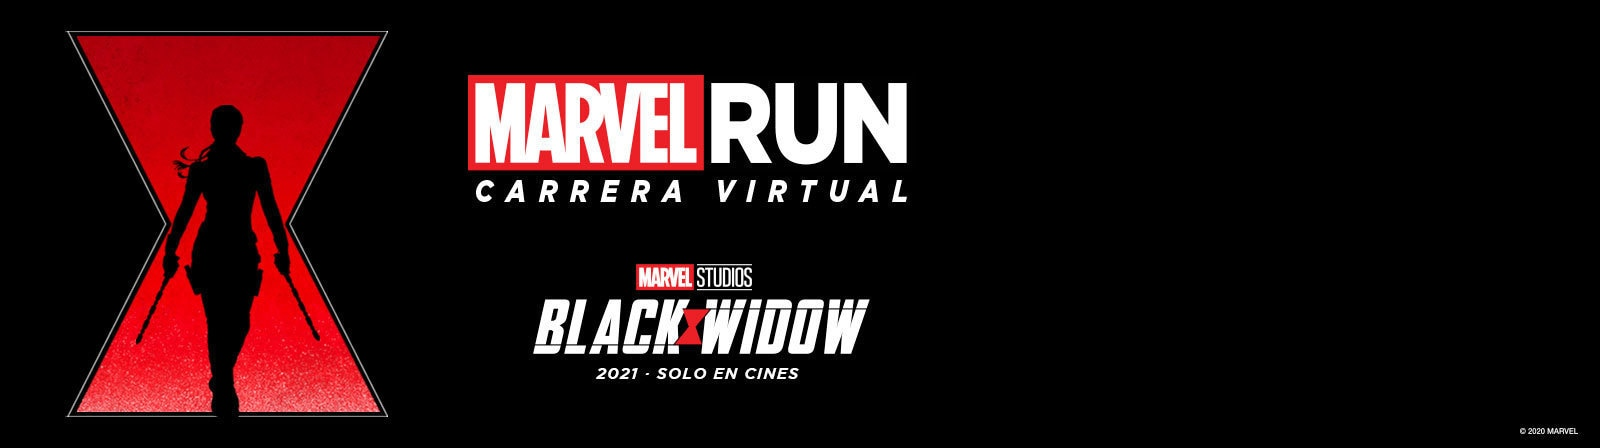 Marvel Run Carrera Virtual ARGENTINA